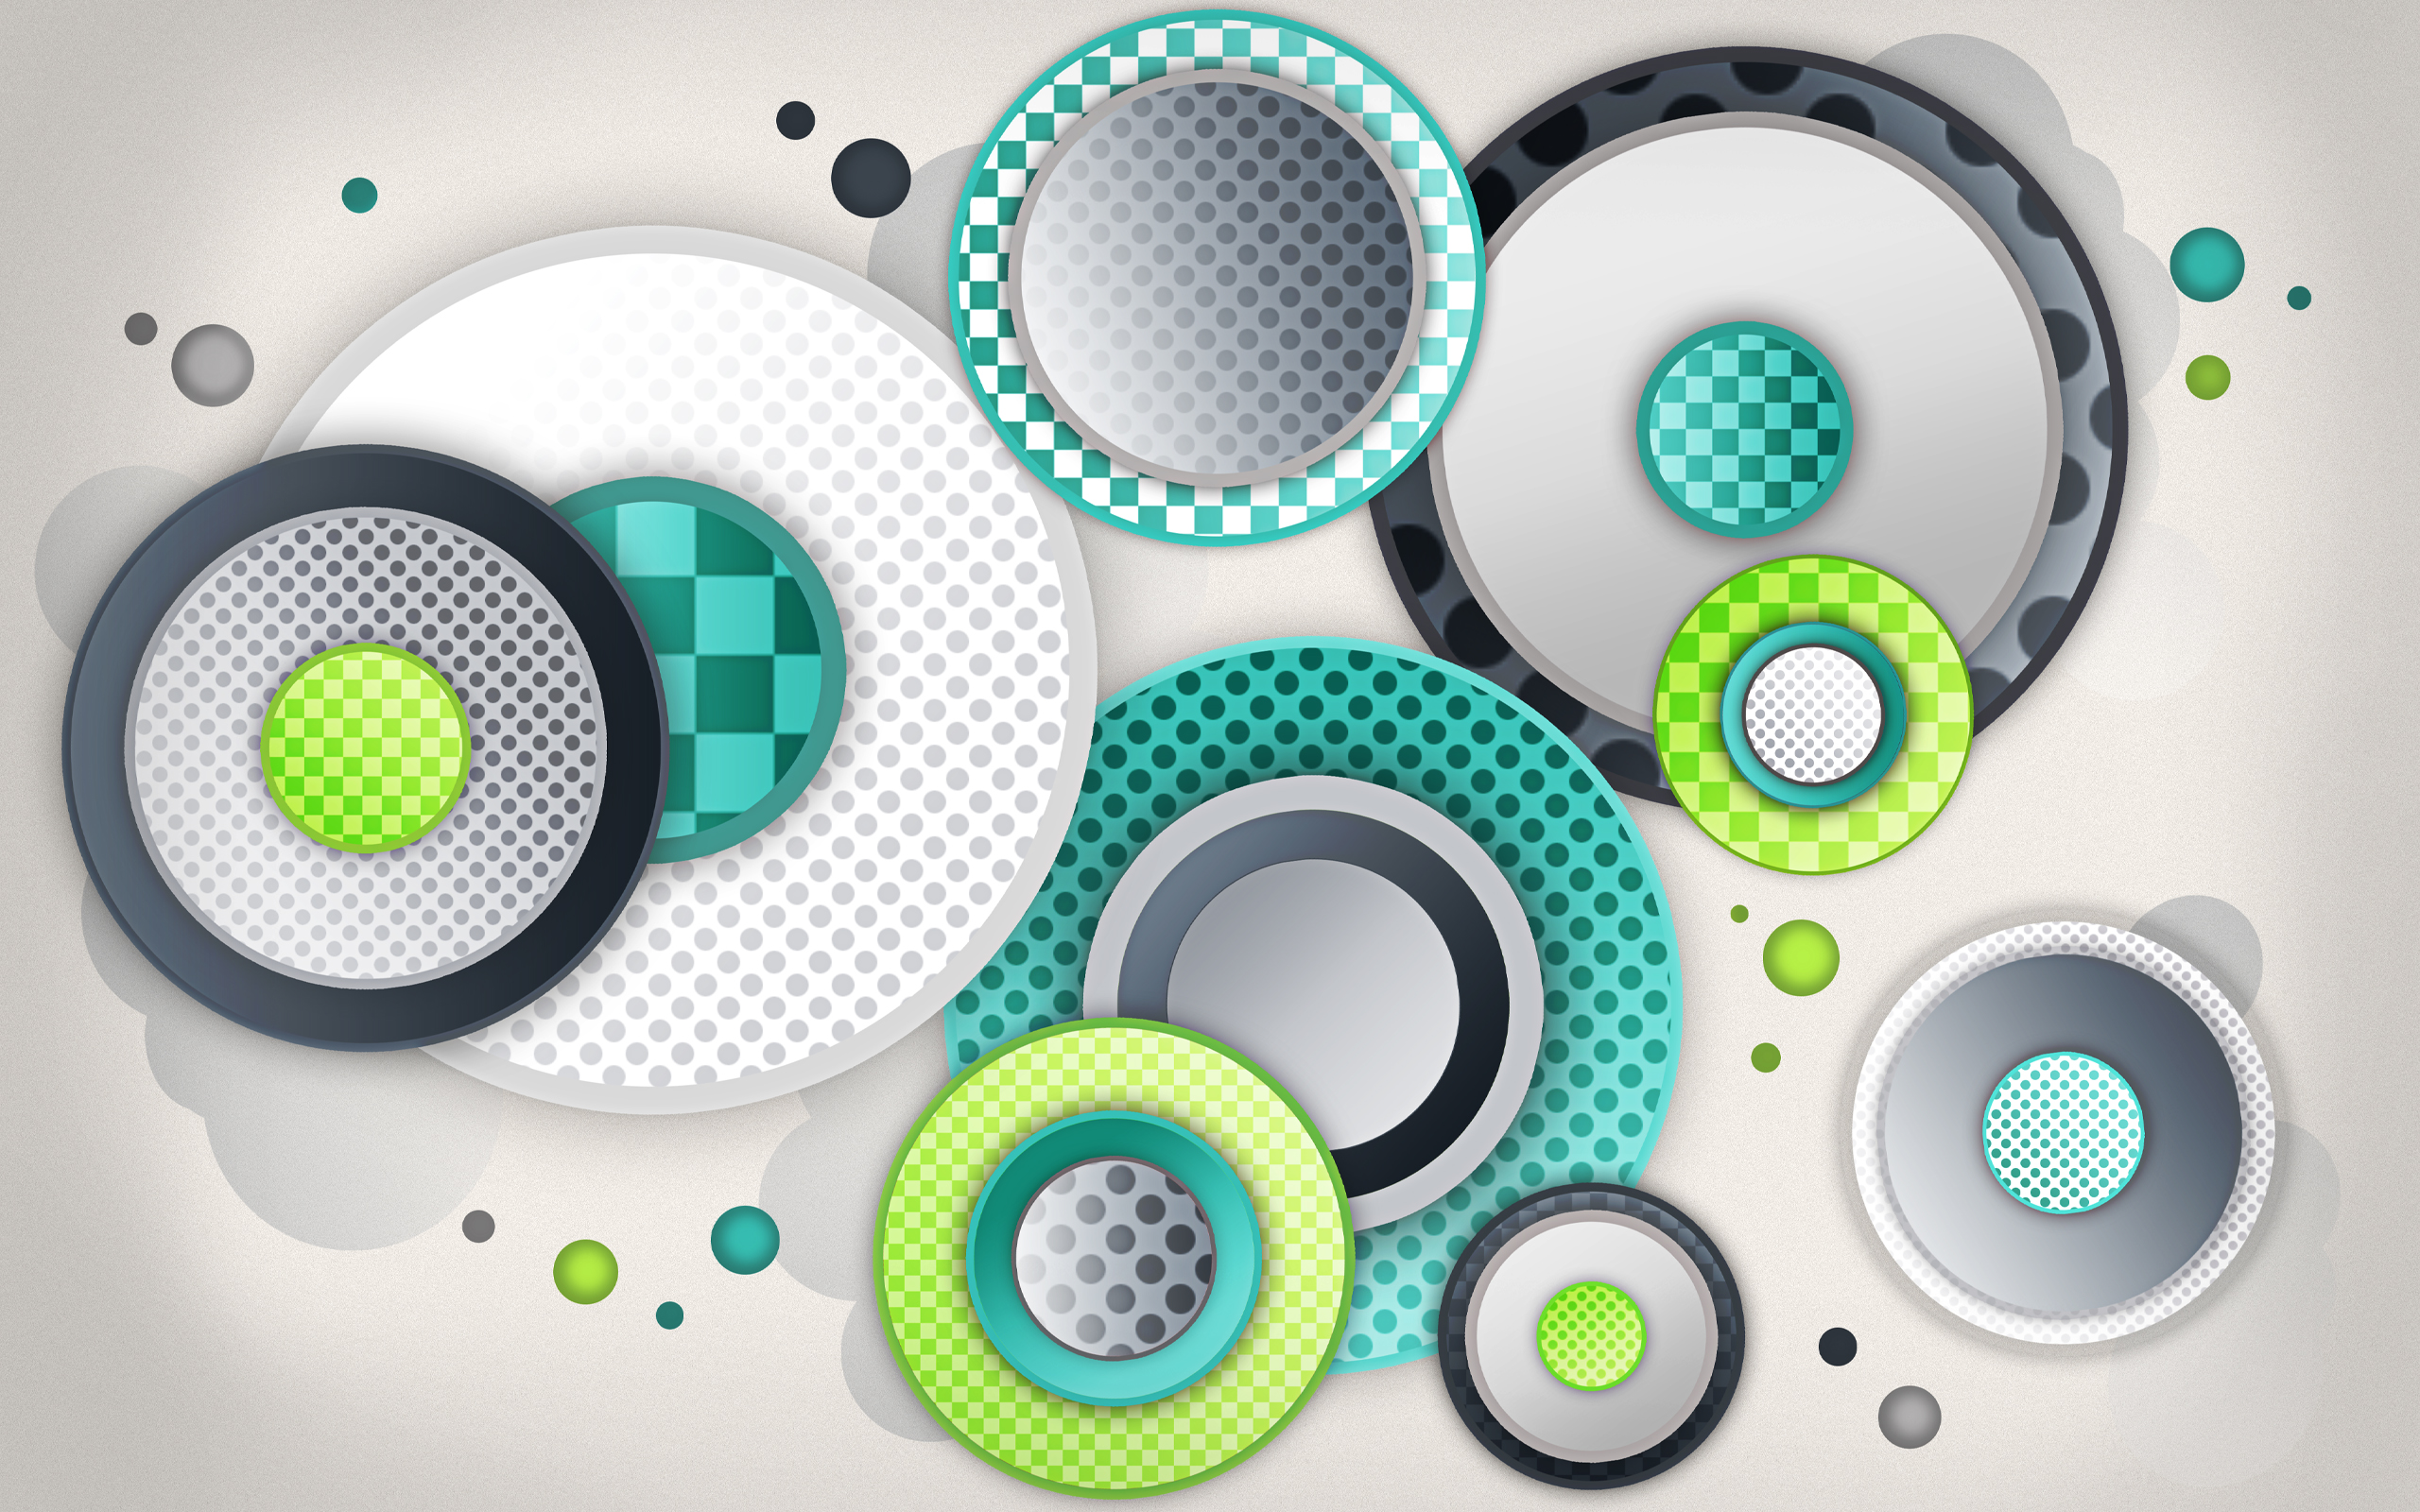 Abstract Graphics Comments Leave A Comment Categories 2348713 Wallpaper wallpaper